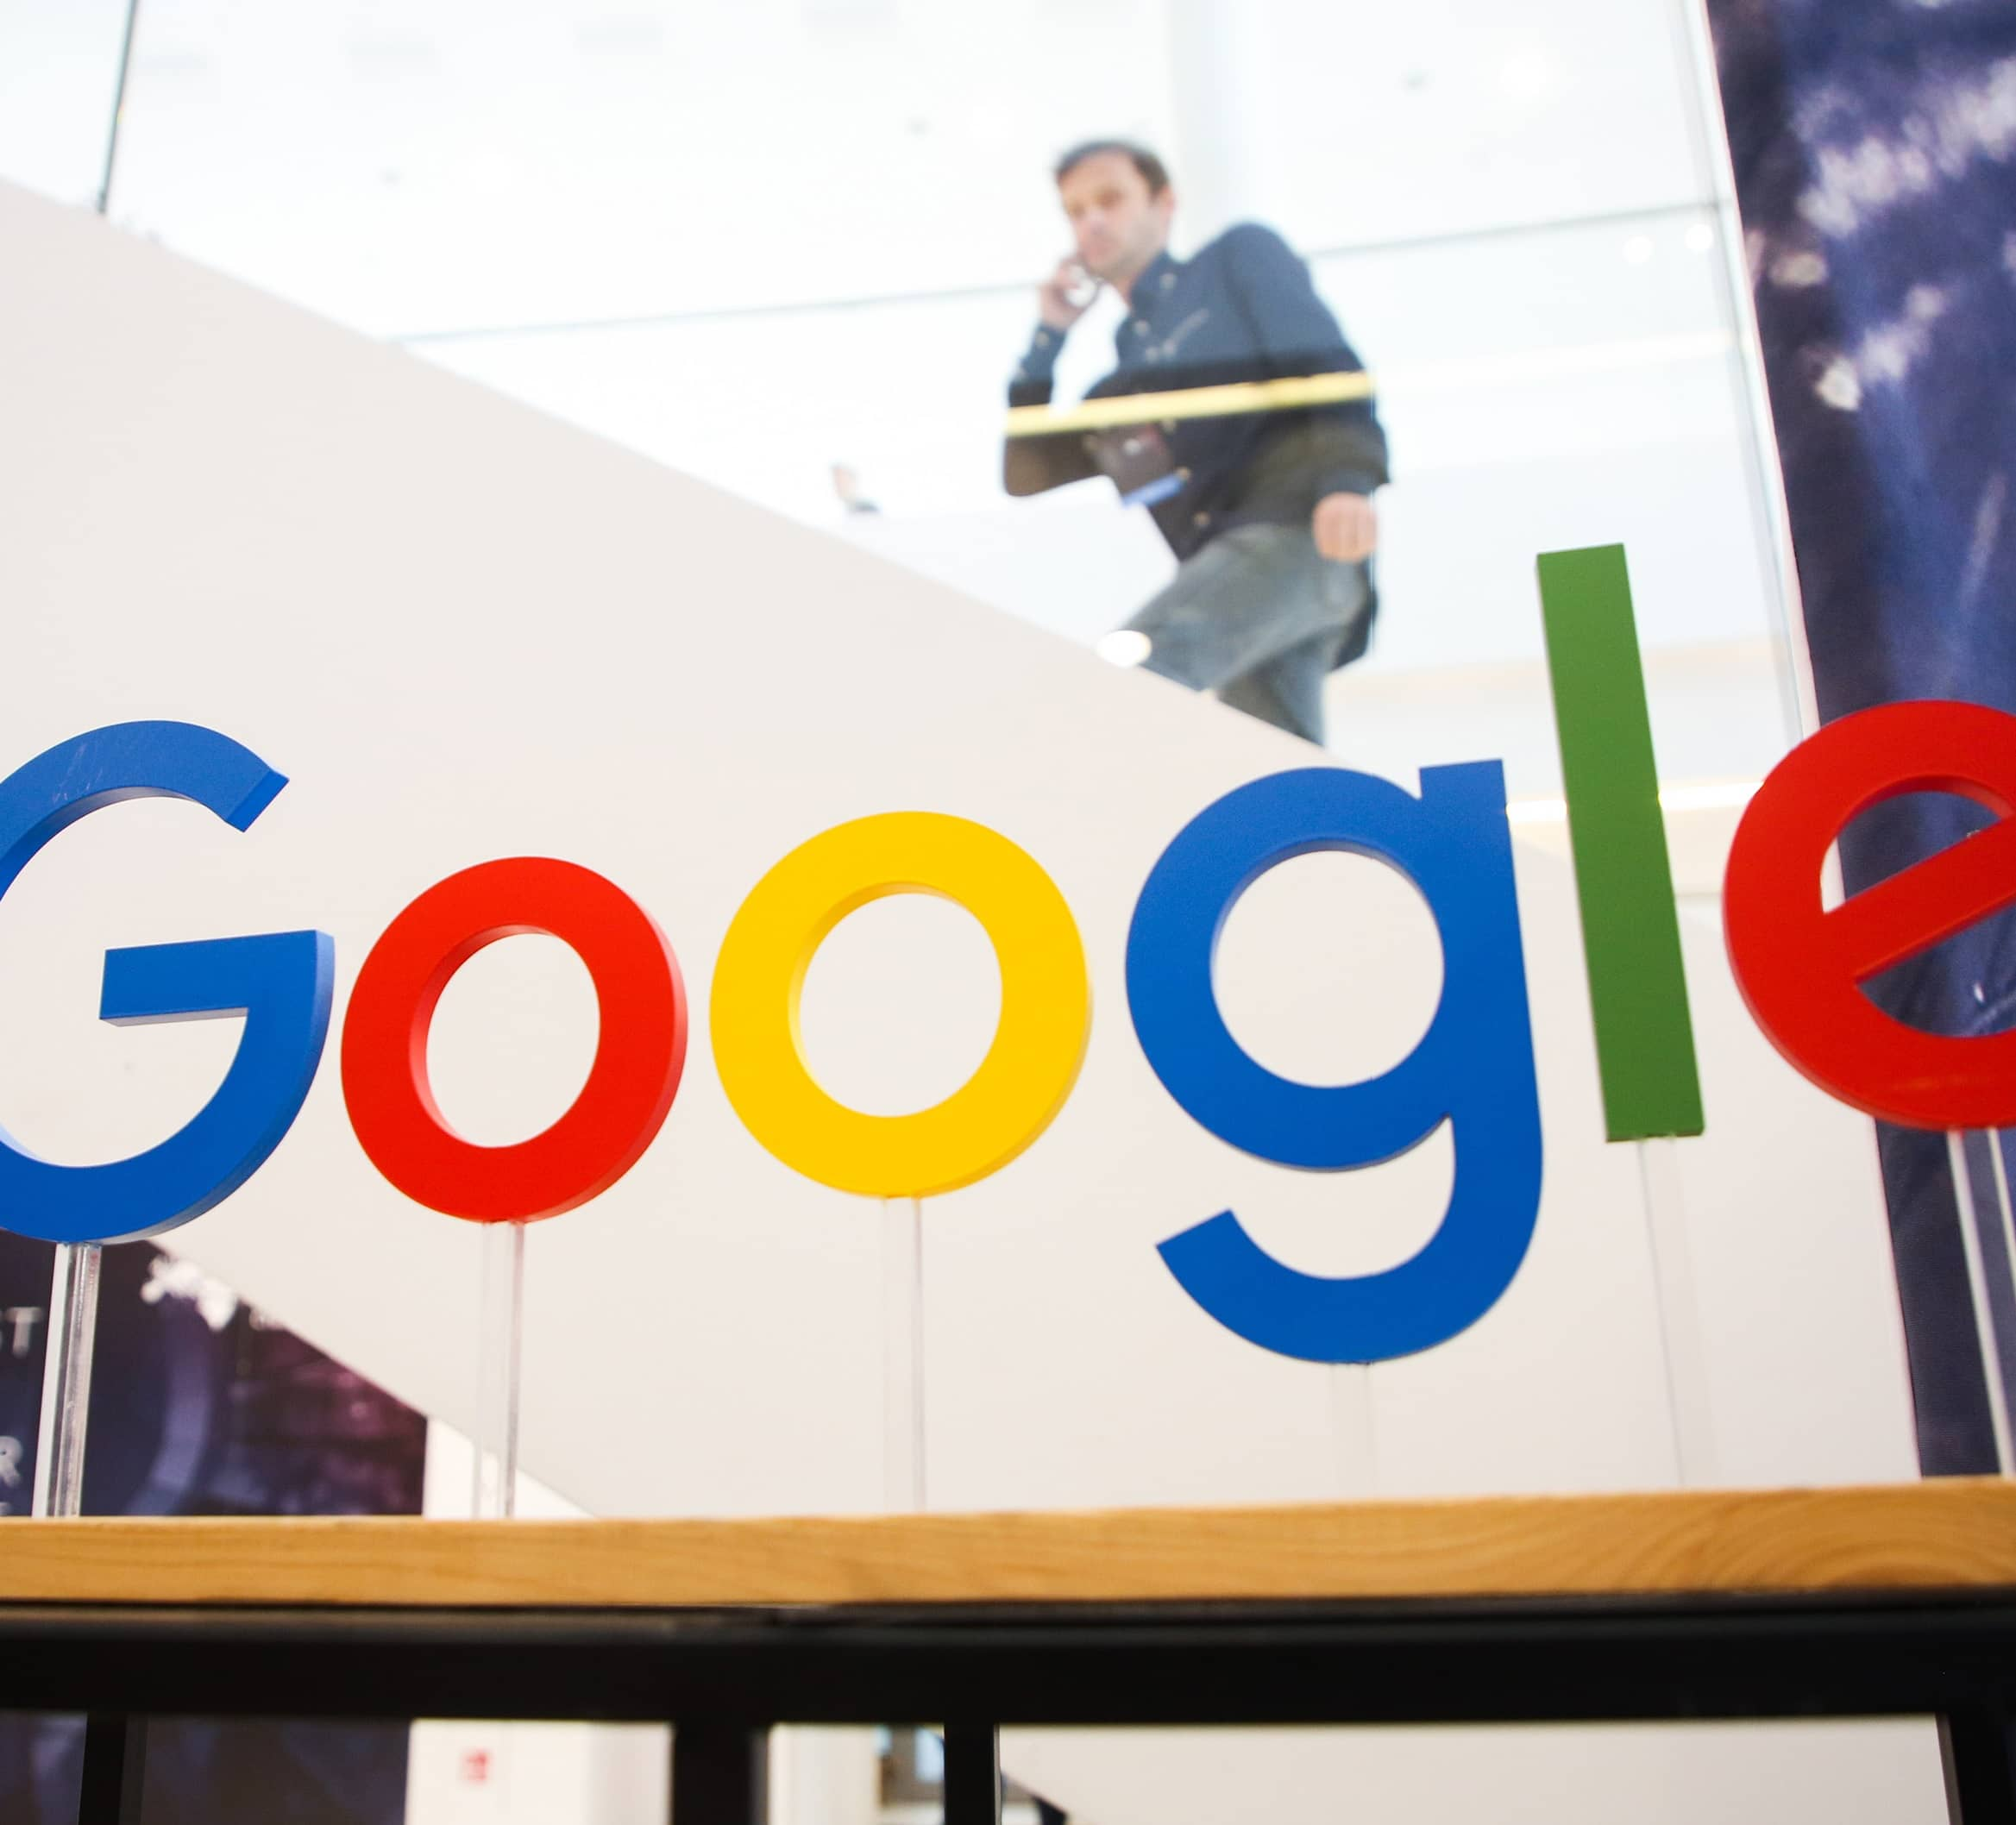 GOOGLE TO START PAYING SOME NEWS PUBLISHERS FOR CONTENT